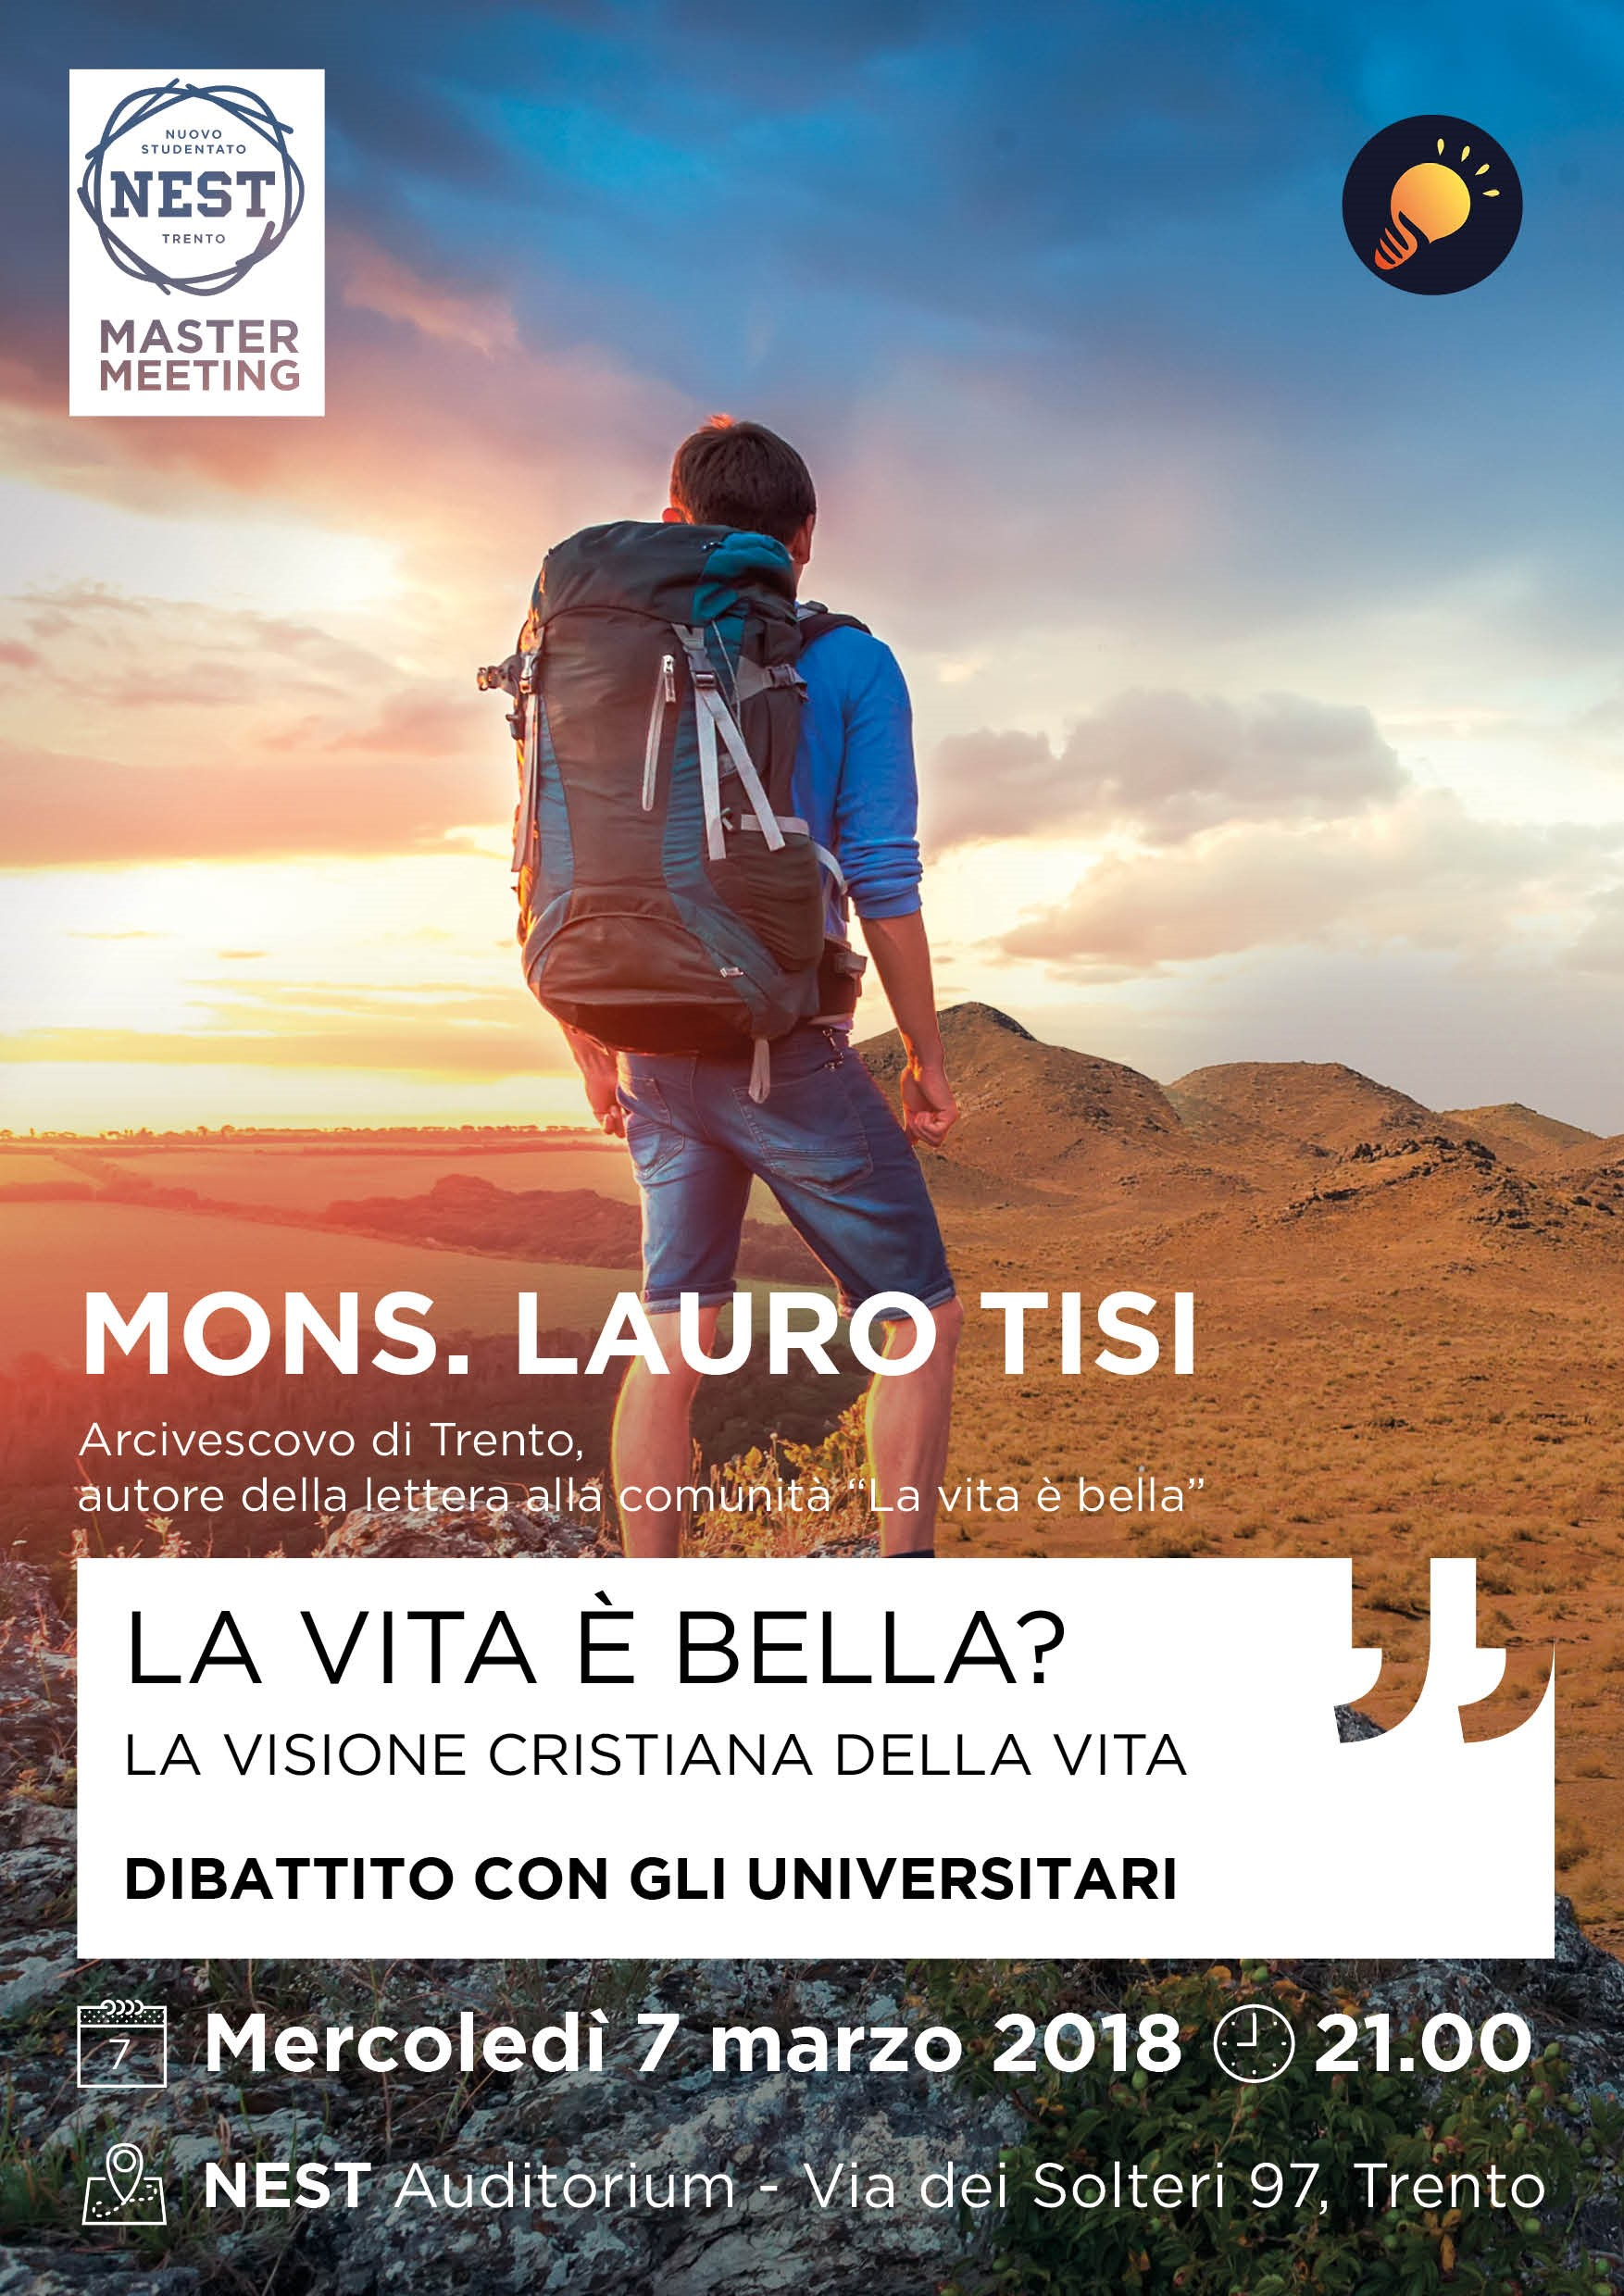 MASTER MEETING - MONS. LAURO TISI